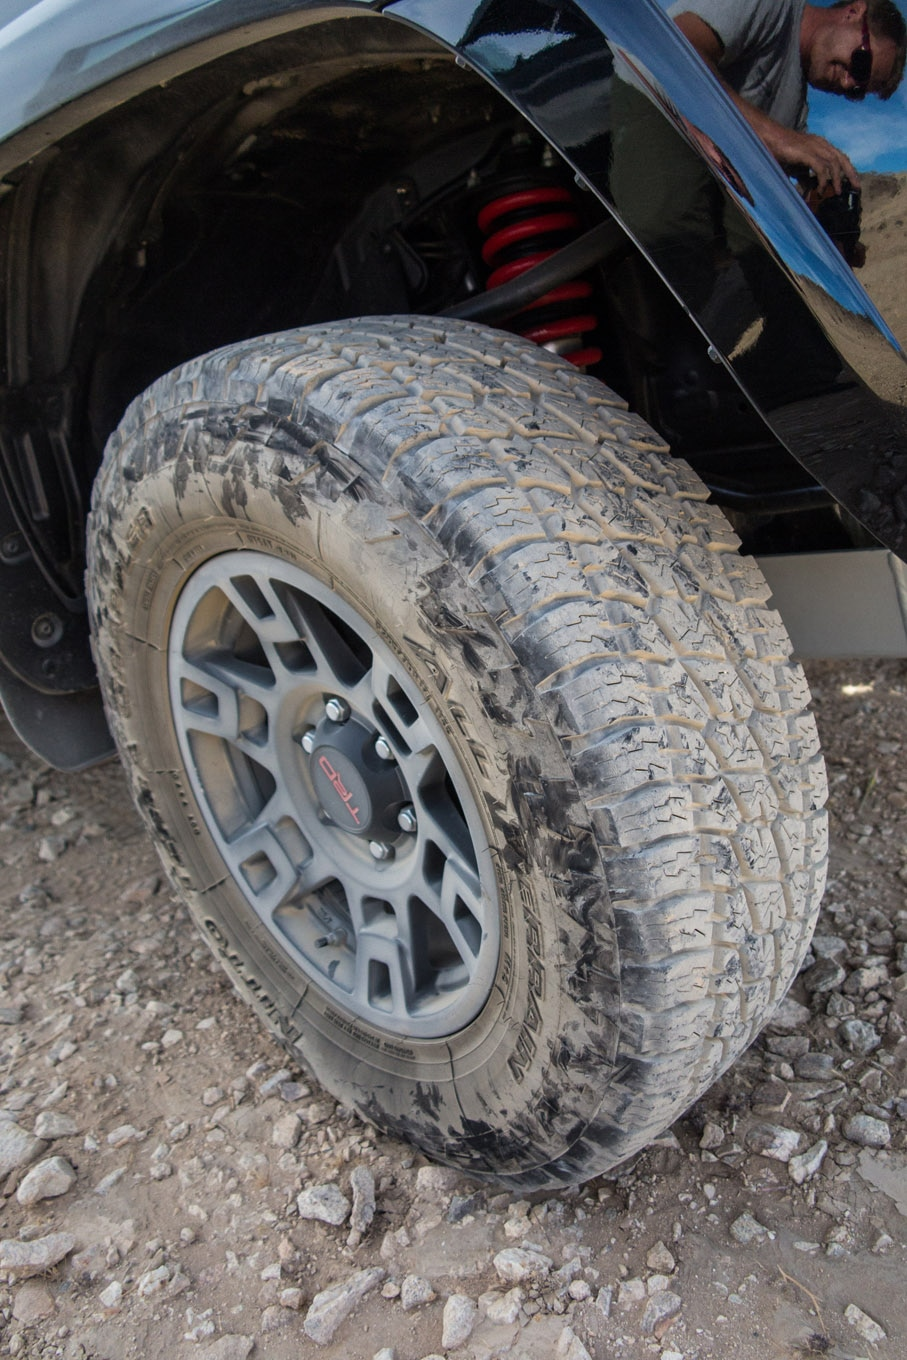 Nitto offers the Terra Grappler G2 tire in both P metric and LT offerings. In the 265/70R17 size, the LT tire has 3/32 inch more tread depth, weighs 5 pounds more, and is rated to carry 500 pounds more per corner. All in the same model tire with the same tread pattern. The tradeoff is the LT is heavier than the P metric and, as Grey Poupon connoisseurs would want to know, may offer a slight degradation in perceived ride quality over the P metric.